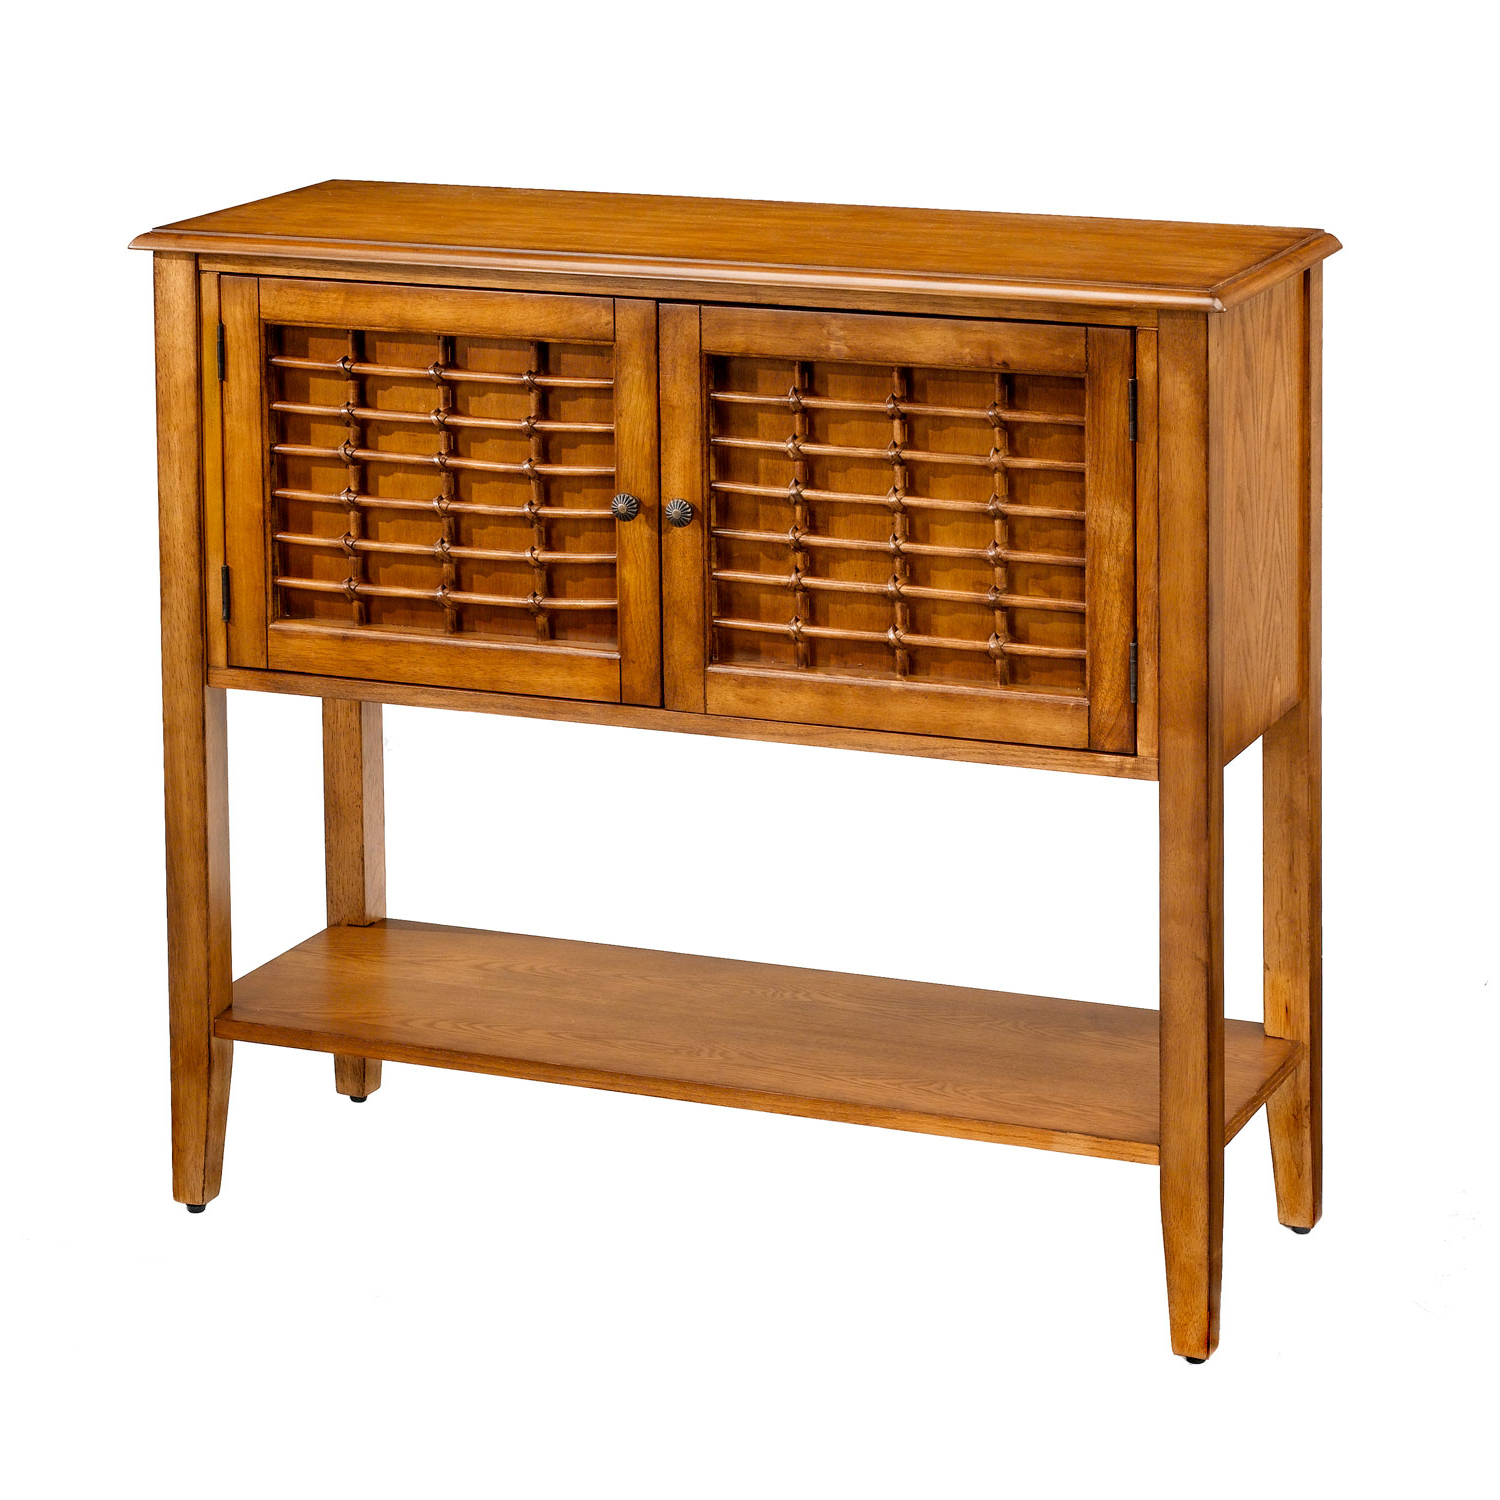 Trendy Hillsdale Furniture Bayberry Oak Sideboard Buffet 100016 100026 For Amos Buffet Sideboards (View 5 of 20)